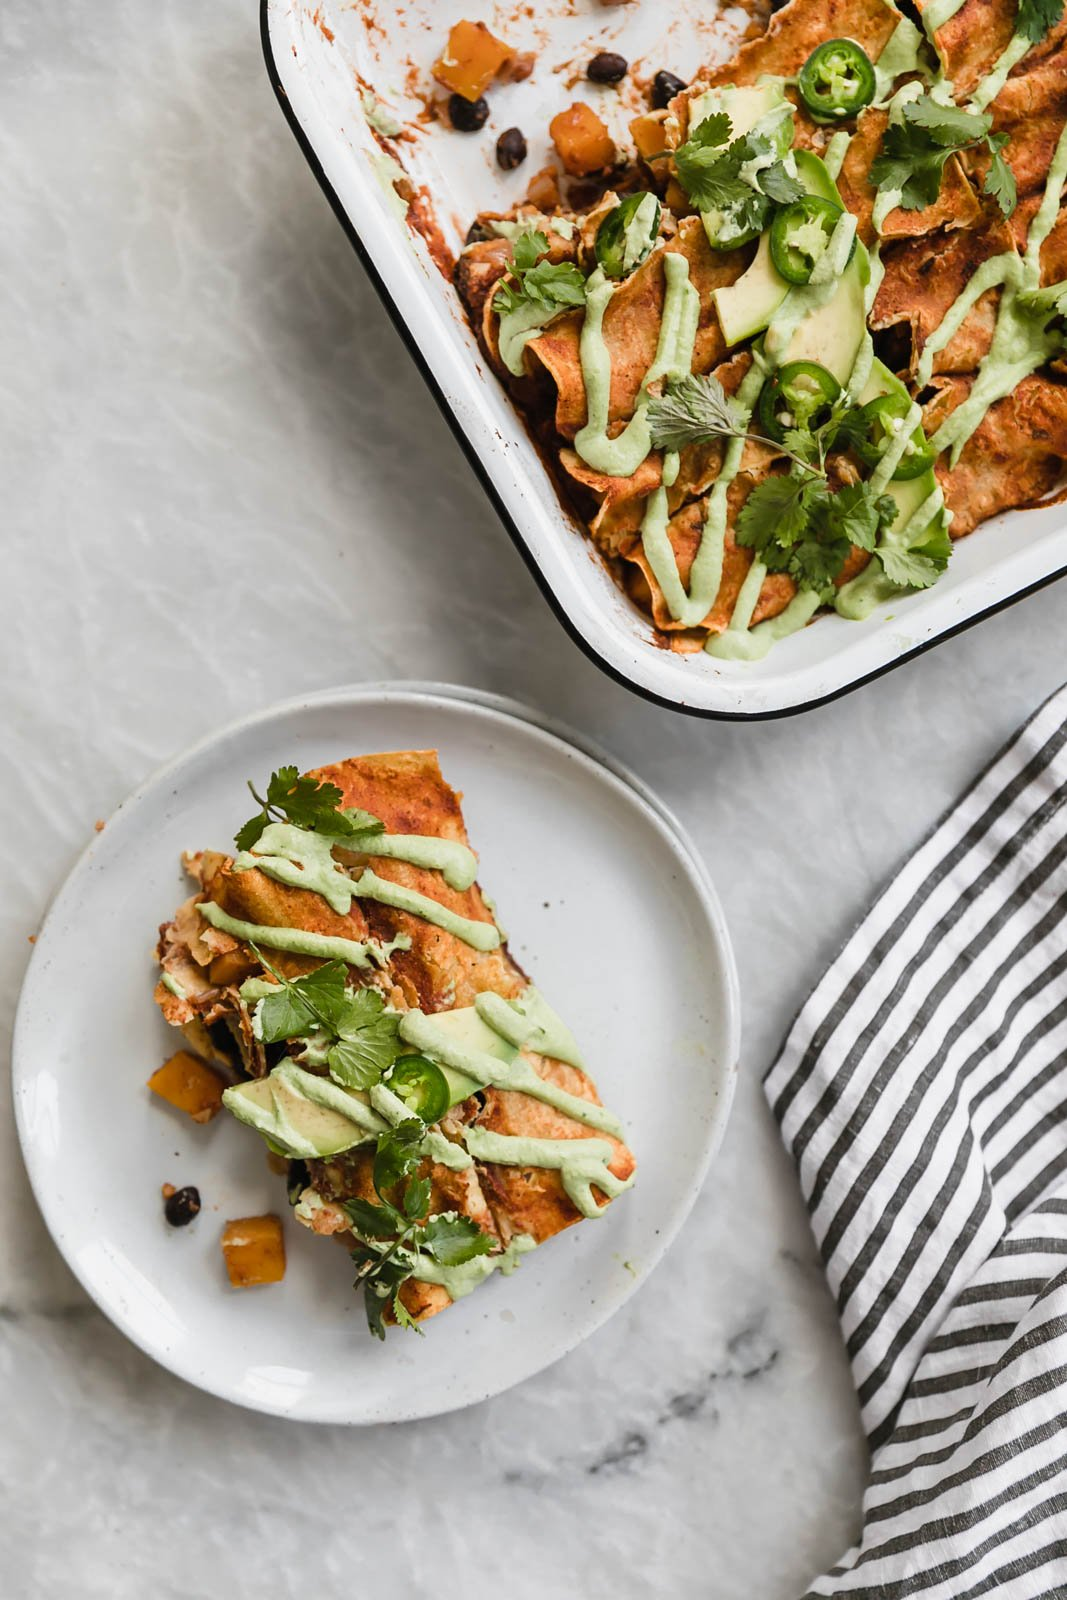 Delicious black bean enchiladas with savory butternut squash and homemade enchilada sauce. They're drizzled with an addicting, vegan jalapeño cashew crema!